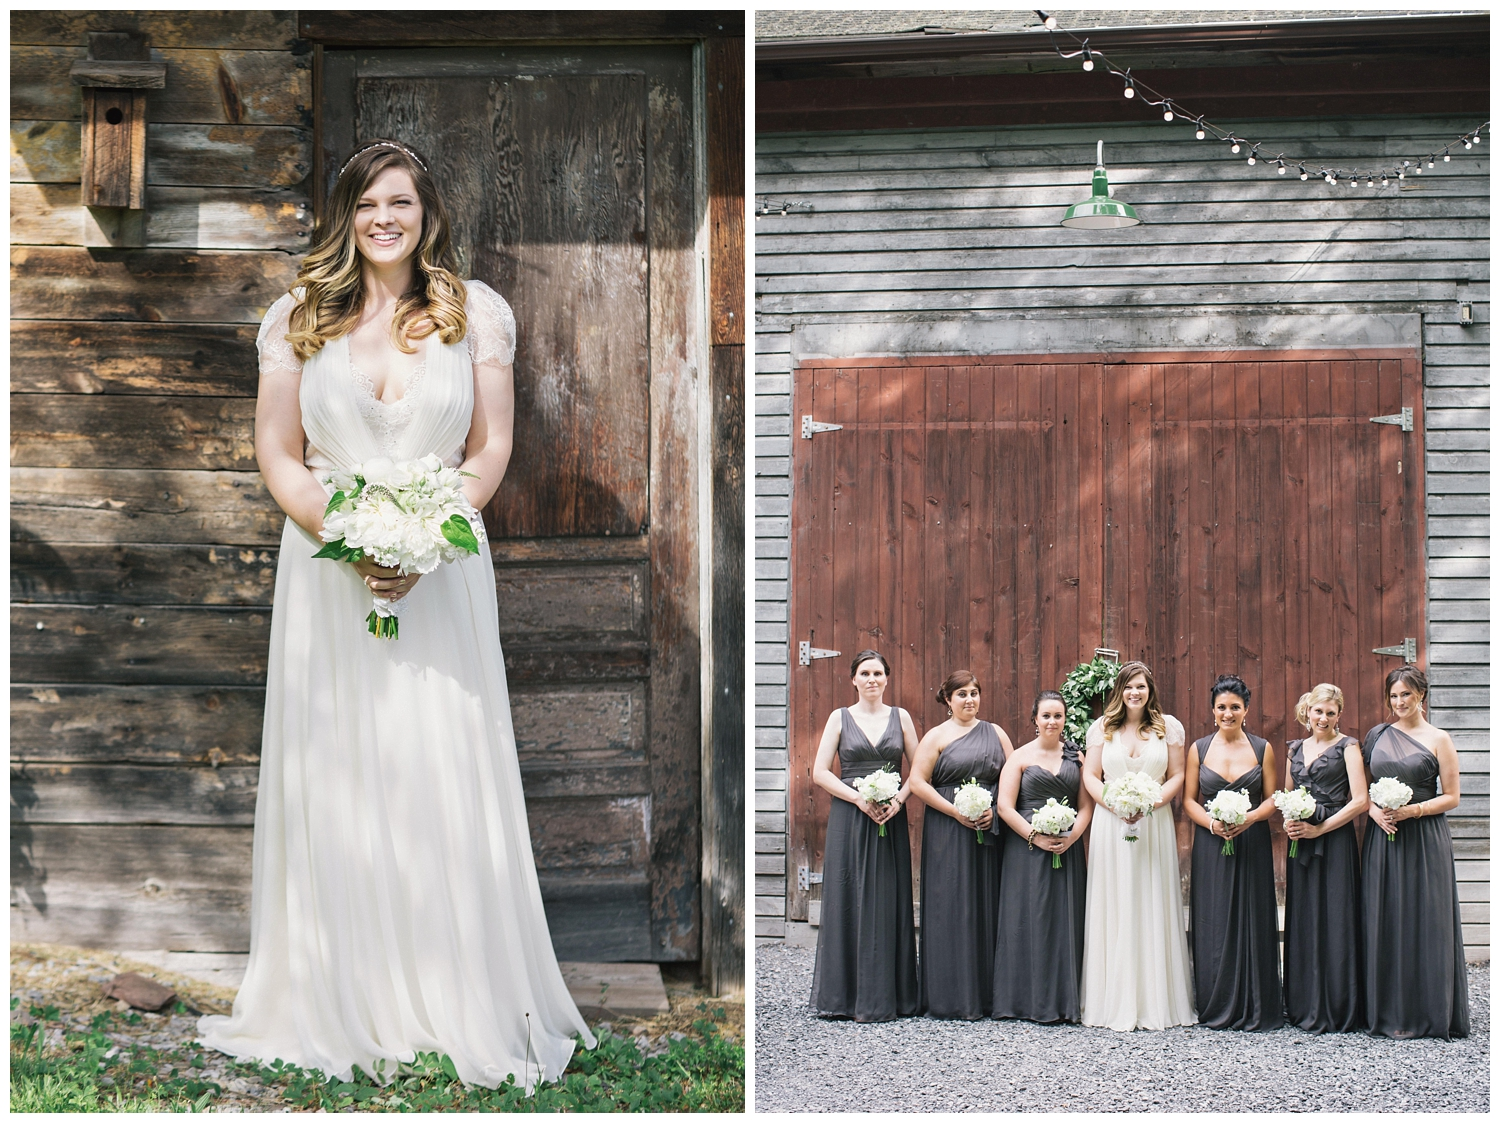 The Roxbury Barn Wedding Venue | Bride and Bridesmaids | Barn Wedding